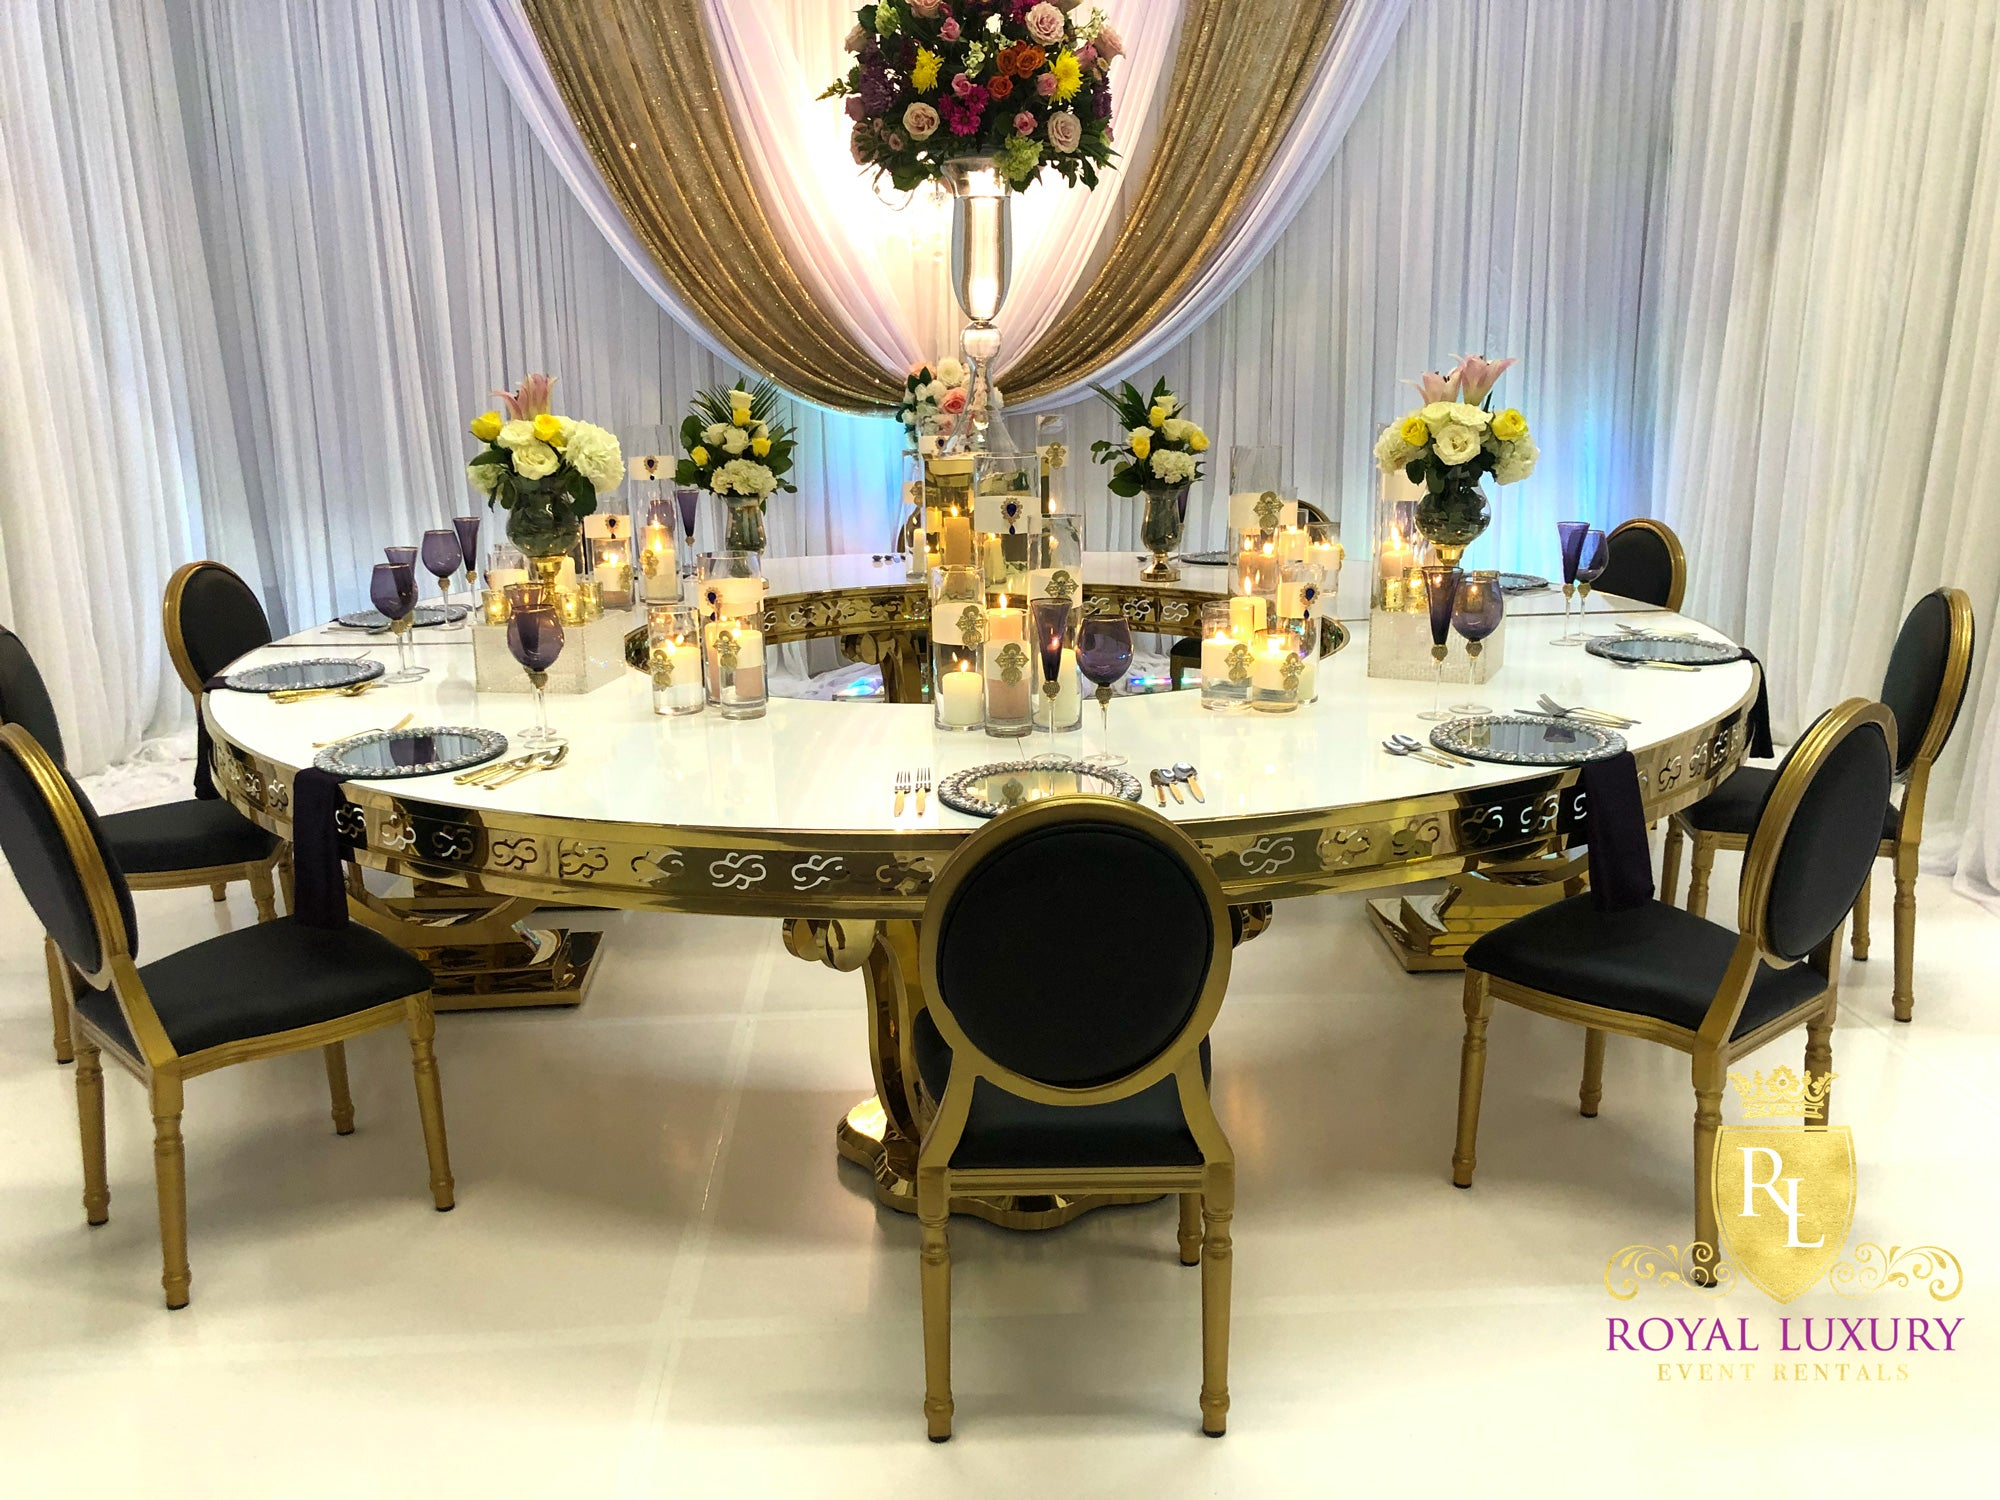 Picture of: Supreme Gold Semi Circle Sweetheart Or Dining Table Royal Luxury Events Rentals